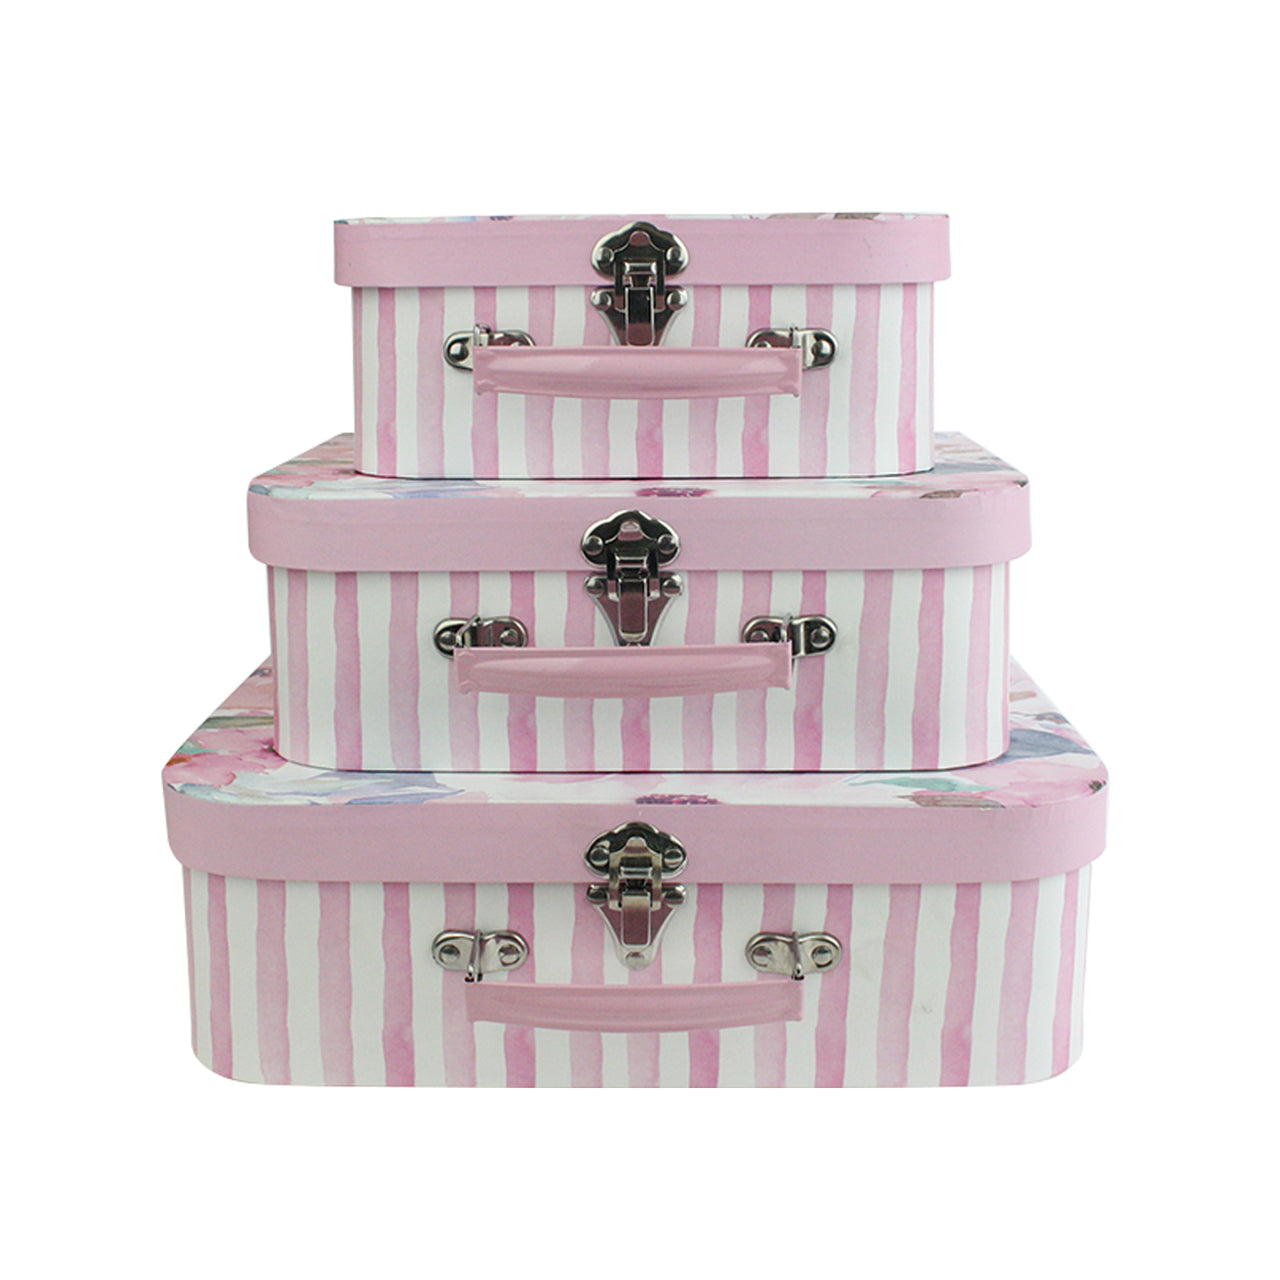 Set of 3 Suitcase Gift Box - Pink Floral Print with Pink Lid